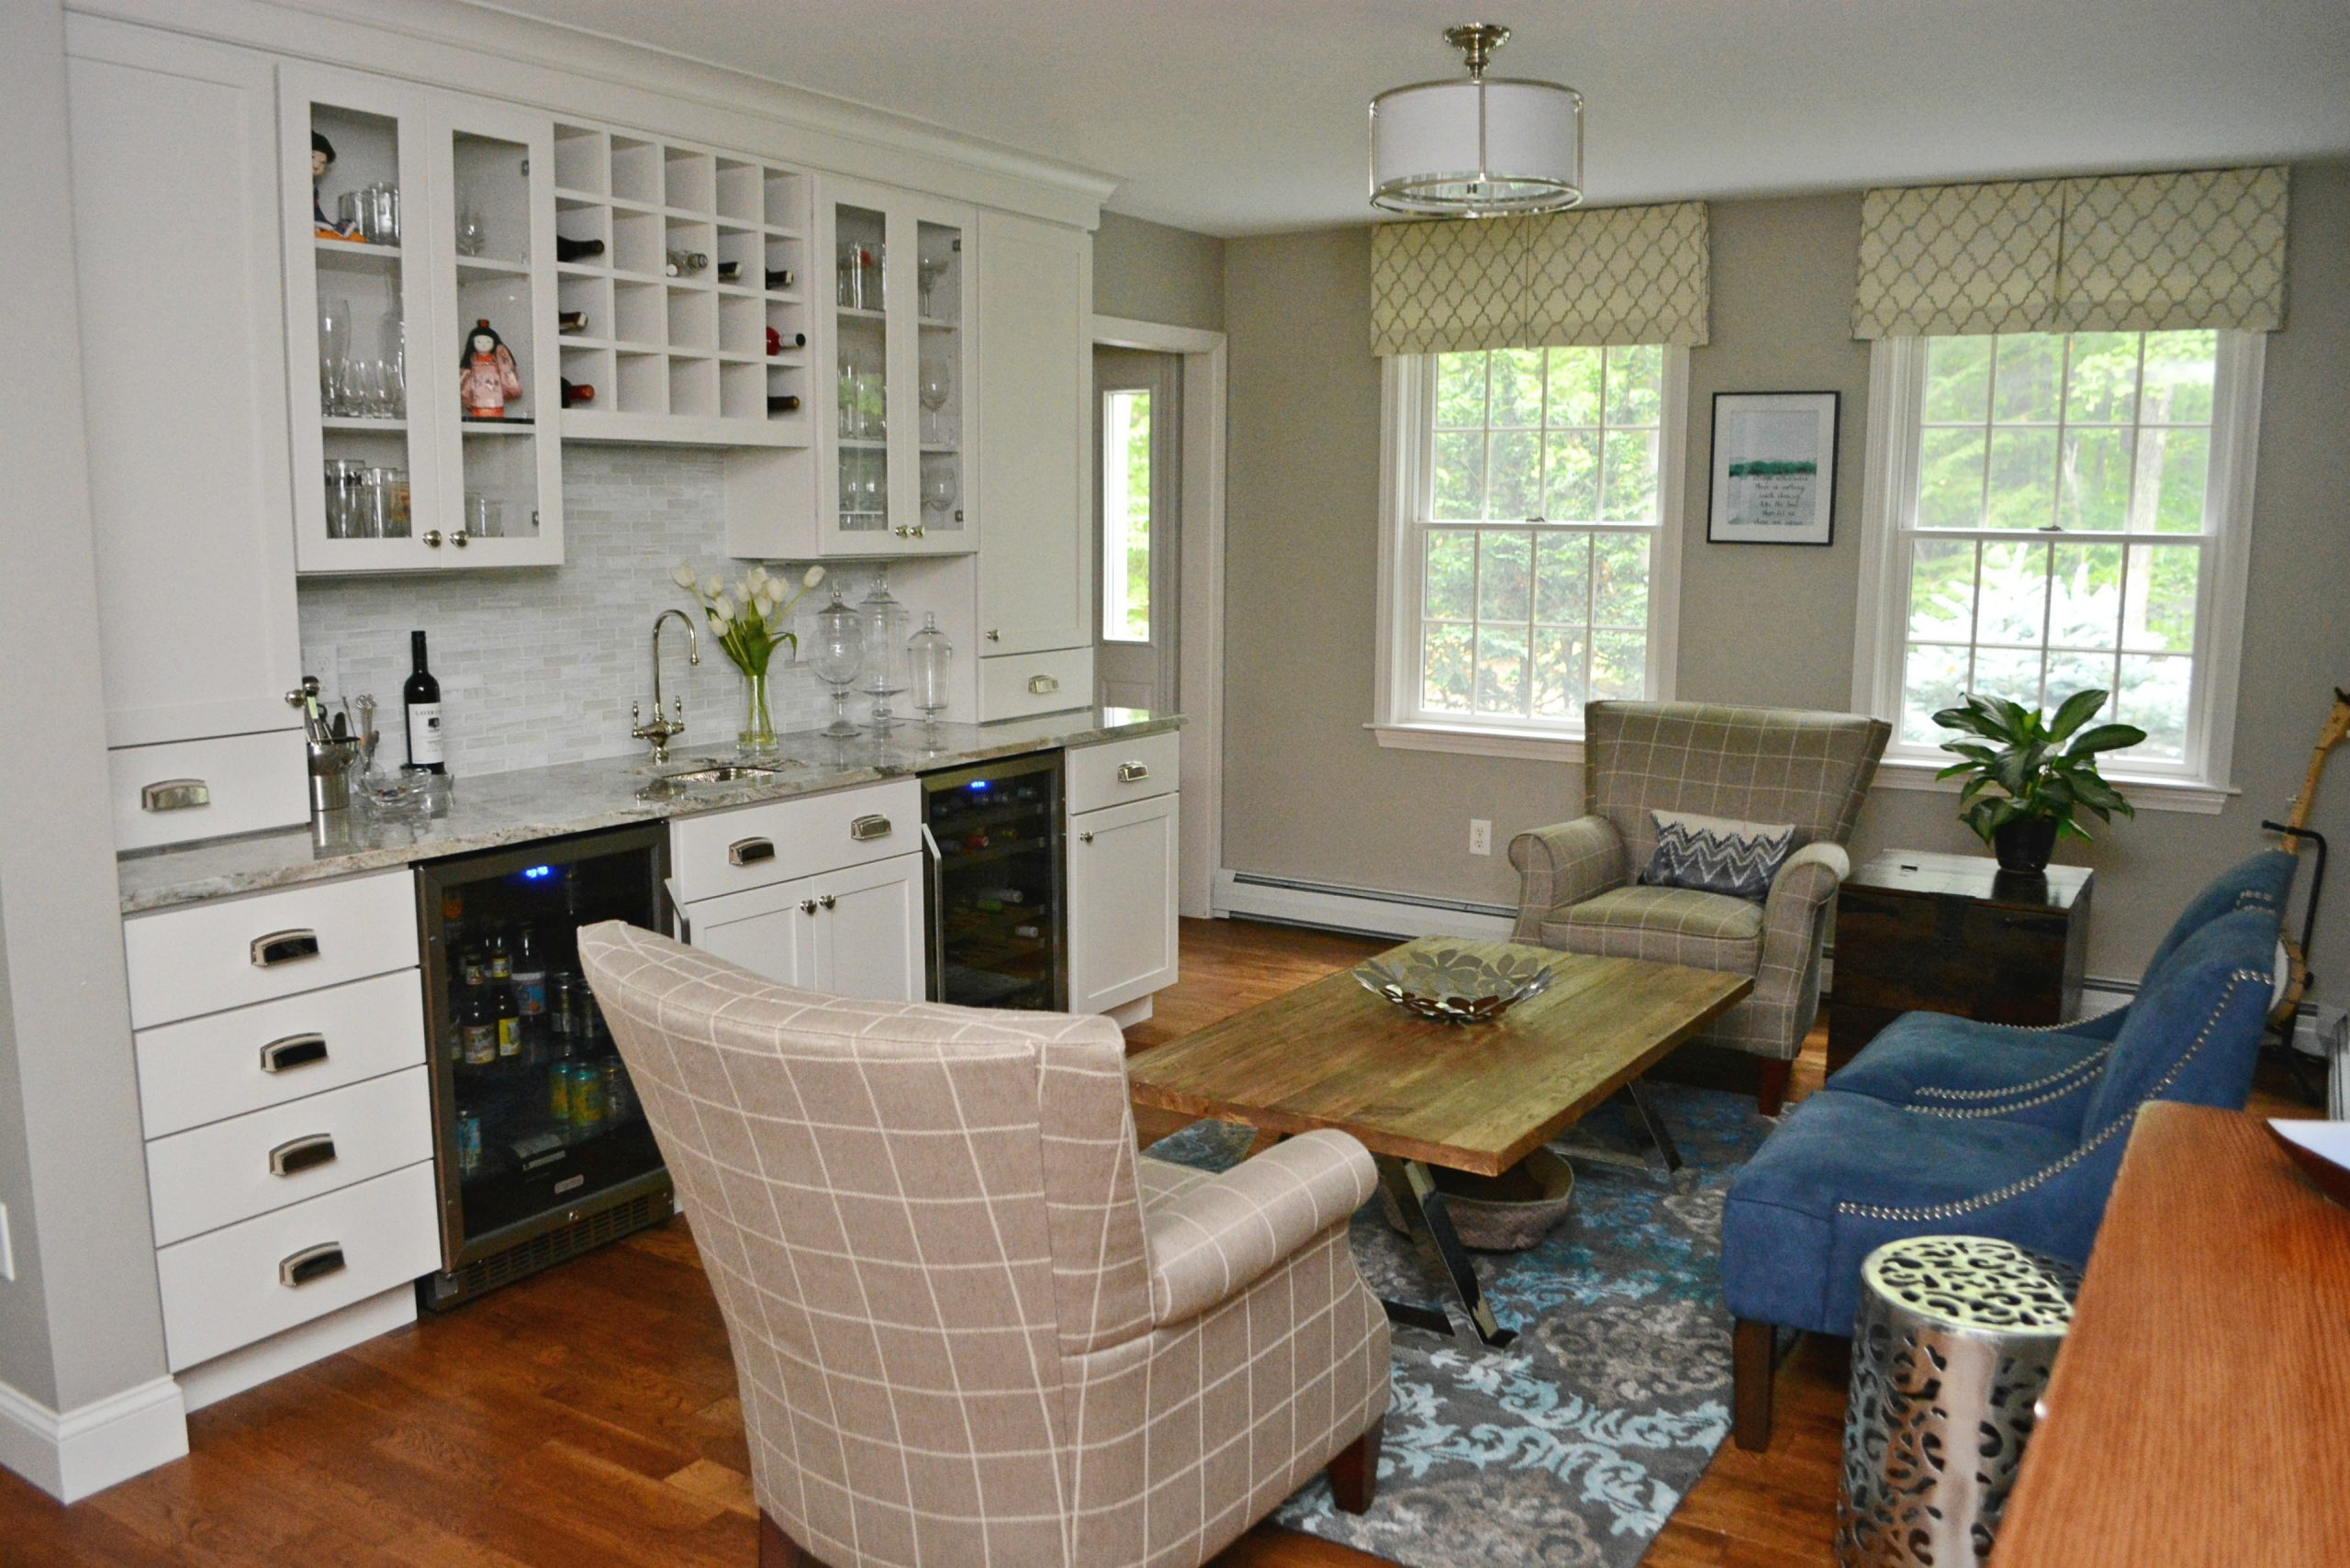 Gray white color scheme with warm wood floors